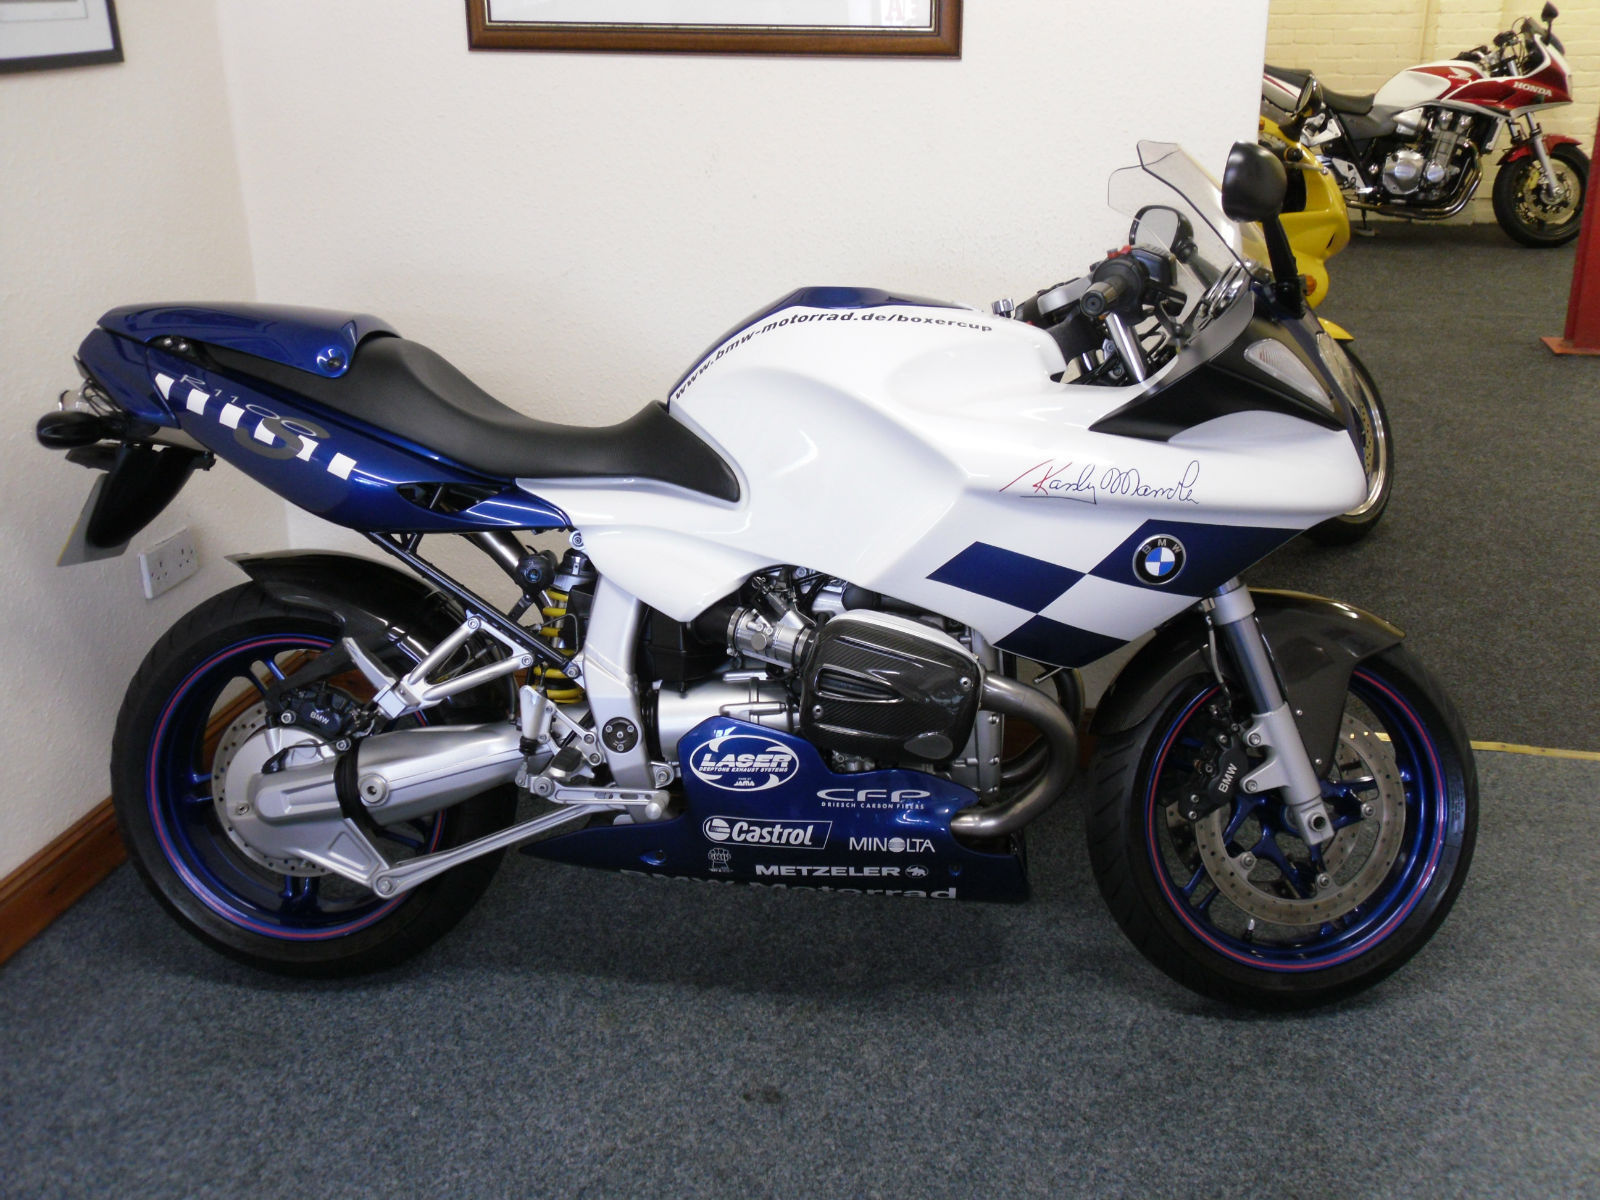 bmw r 1100 s boxer cup randy mamola signed replica 1 owner full bmw history. Black Bedroom Furniture Sets. Home Design Ideas